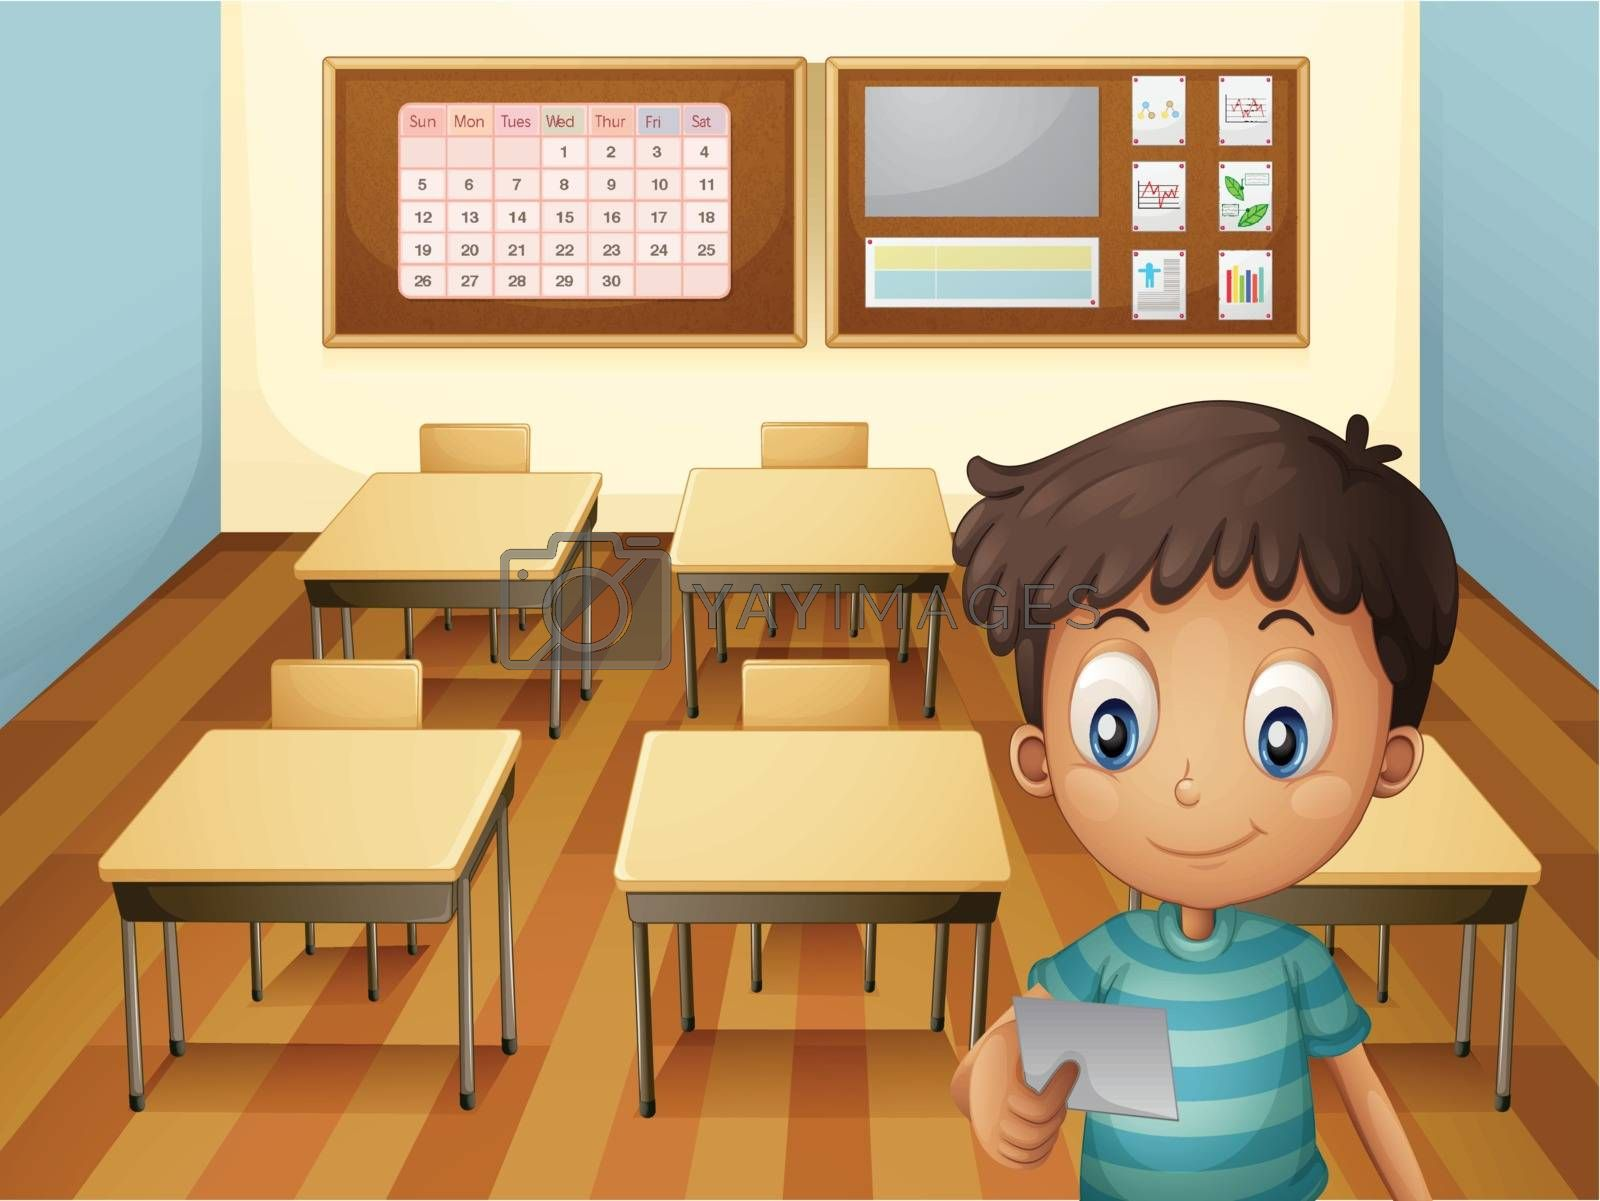 Illustration of a young boy inside the classroom